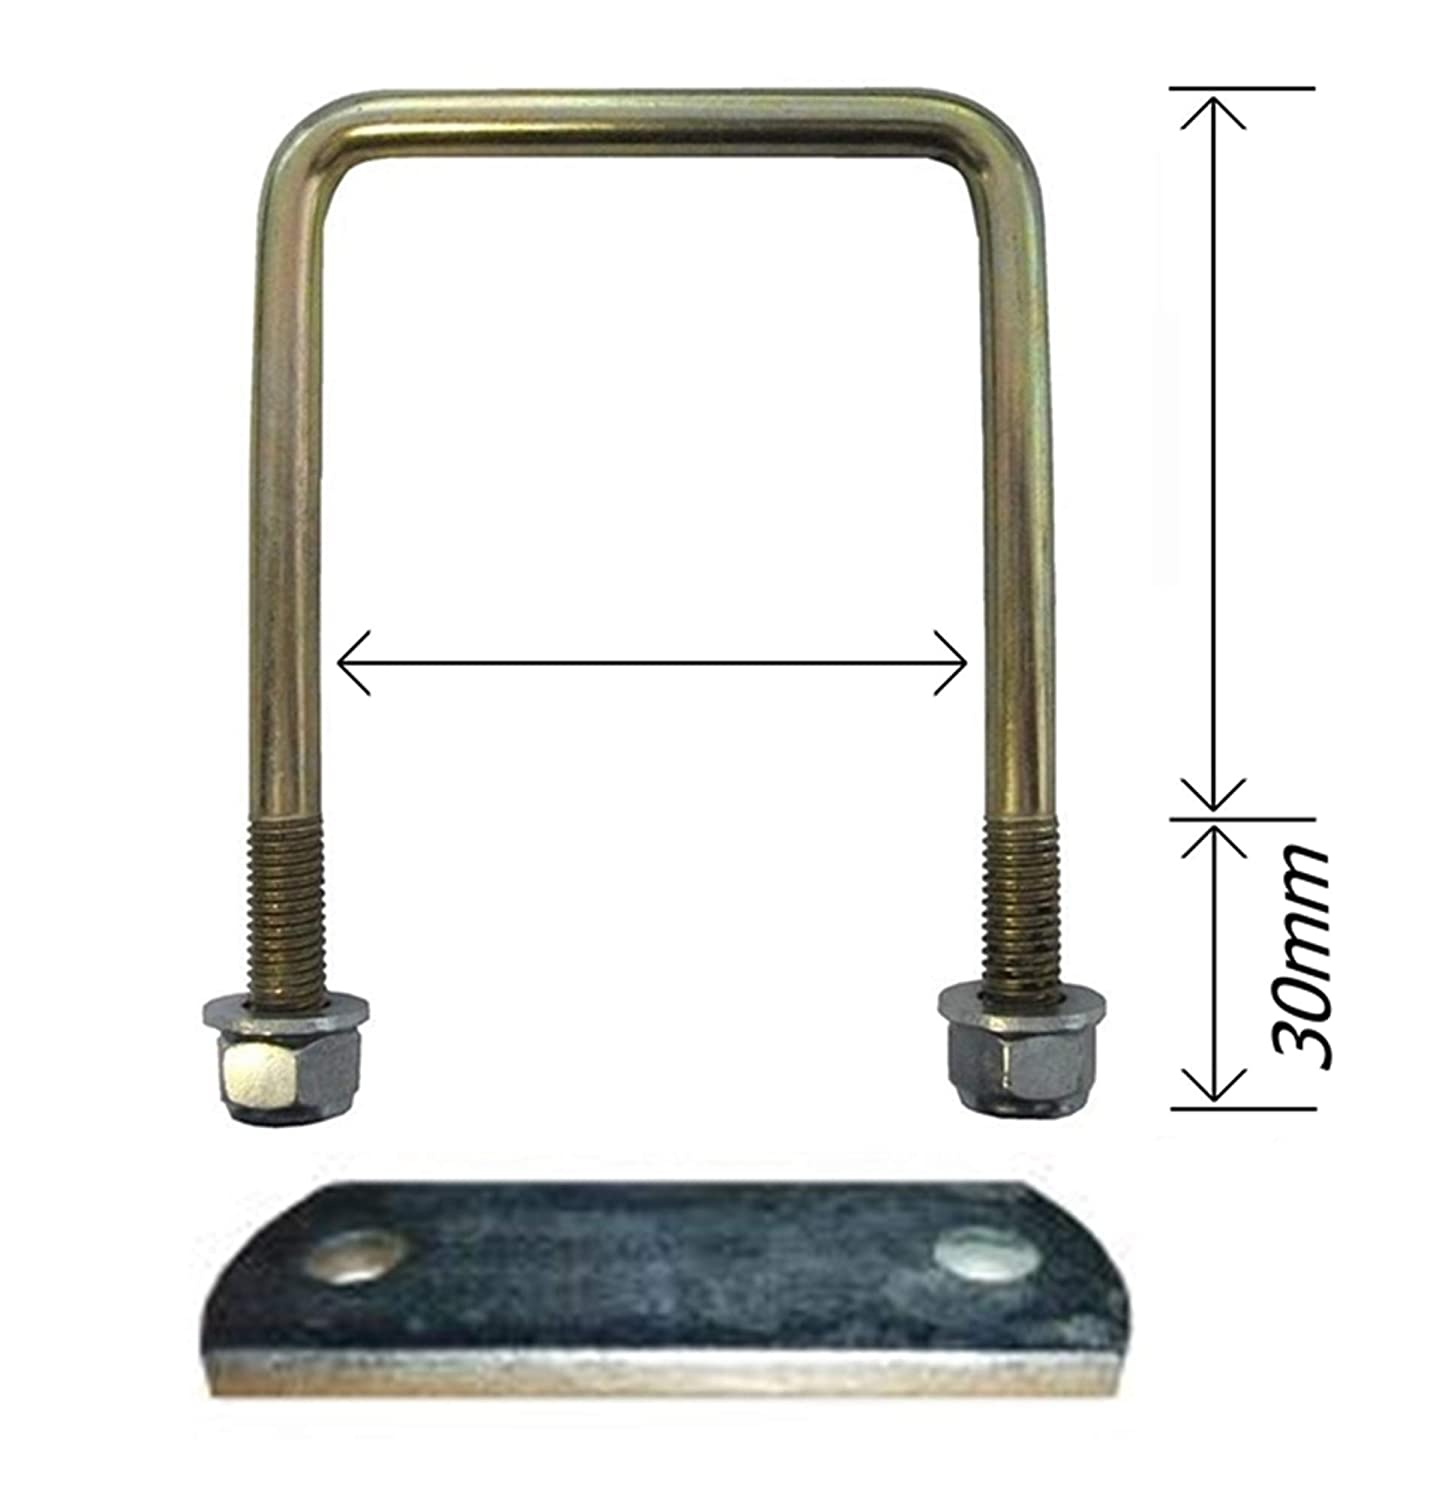 LMX2311 leisure MART U Bolt 60 mm x 60 mm high tensile with locking nuts and washers complete with fixing plate Pt no